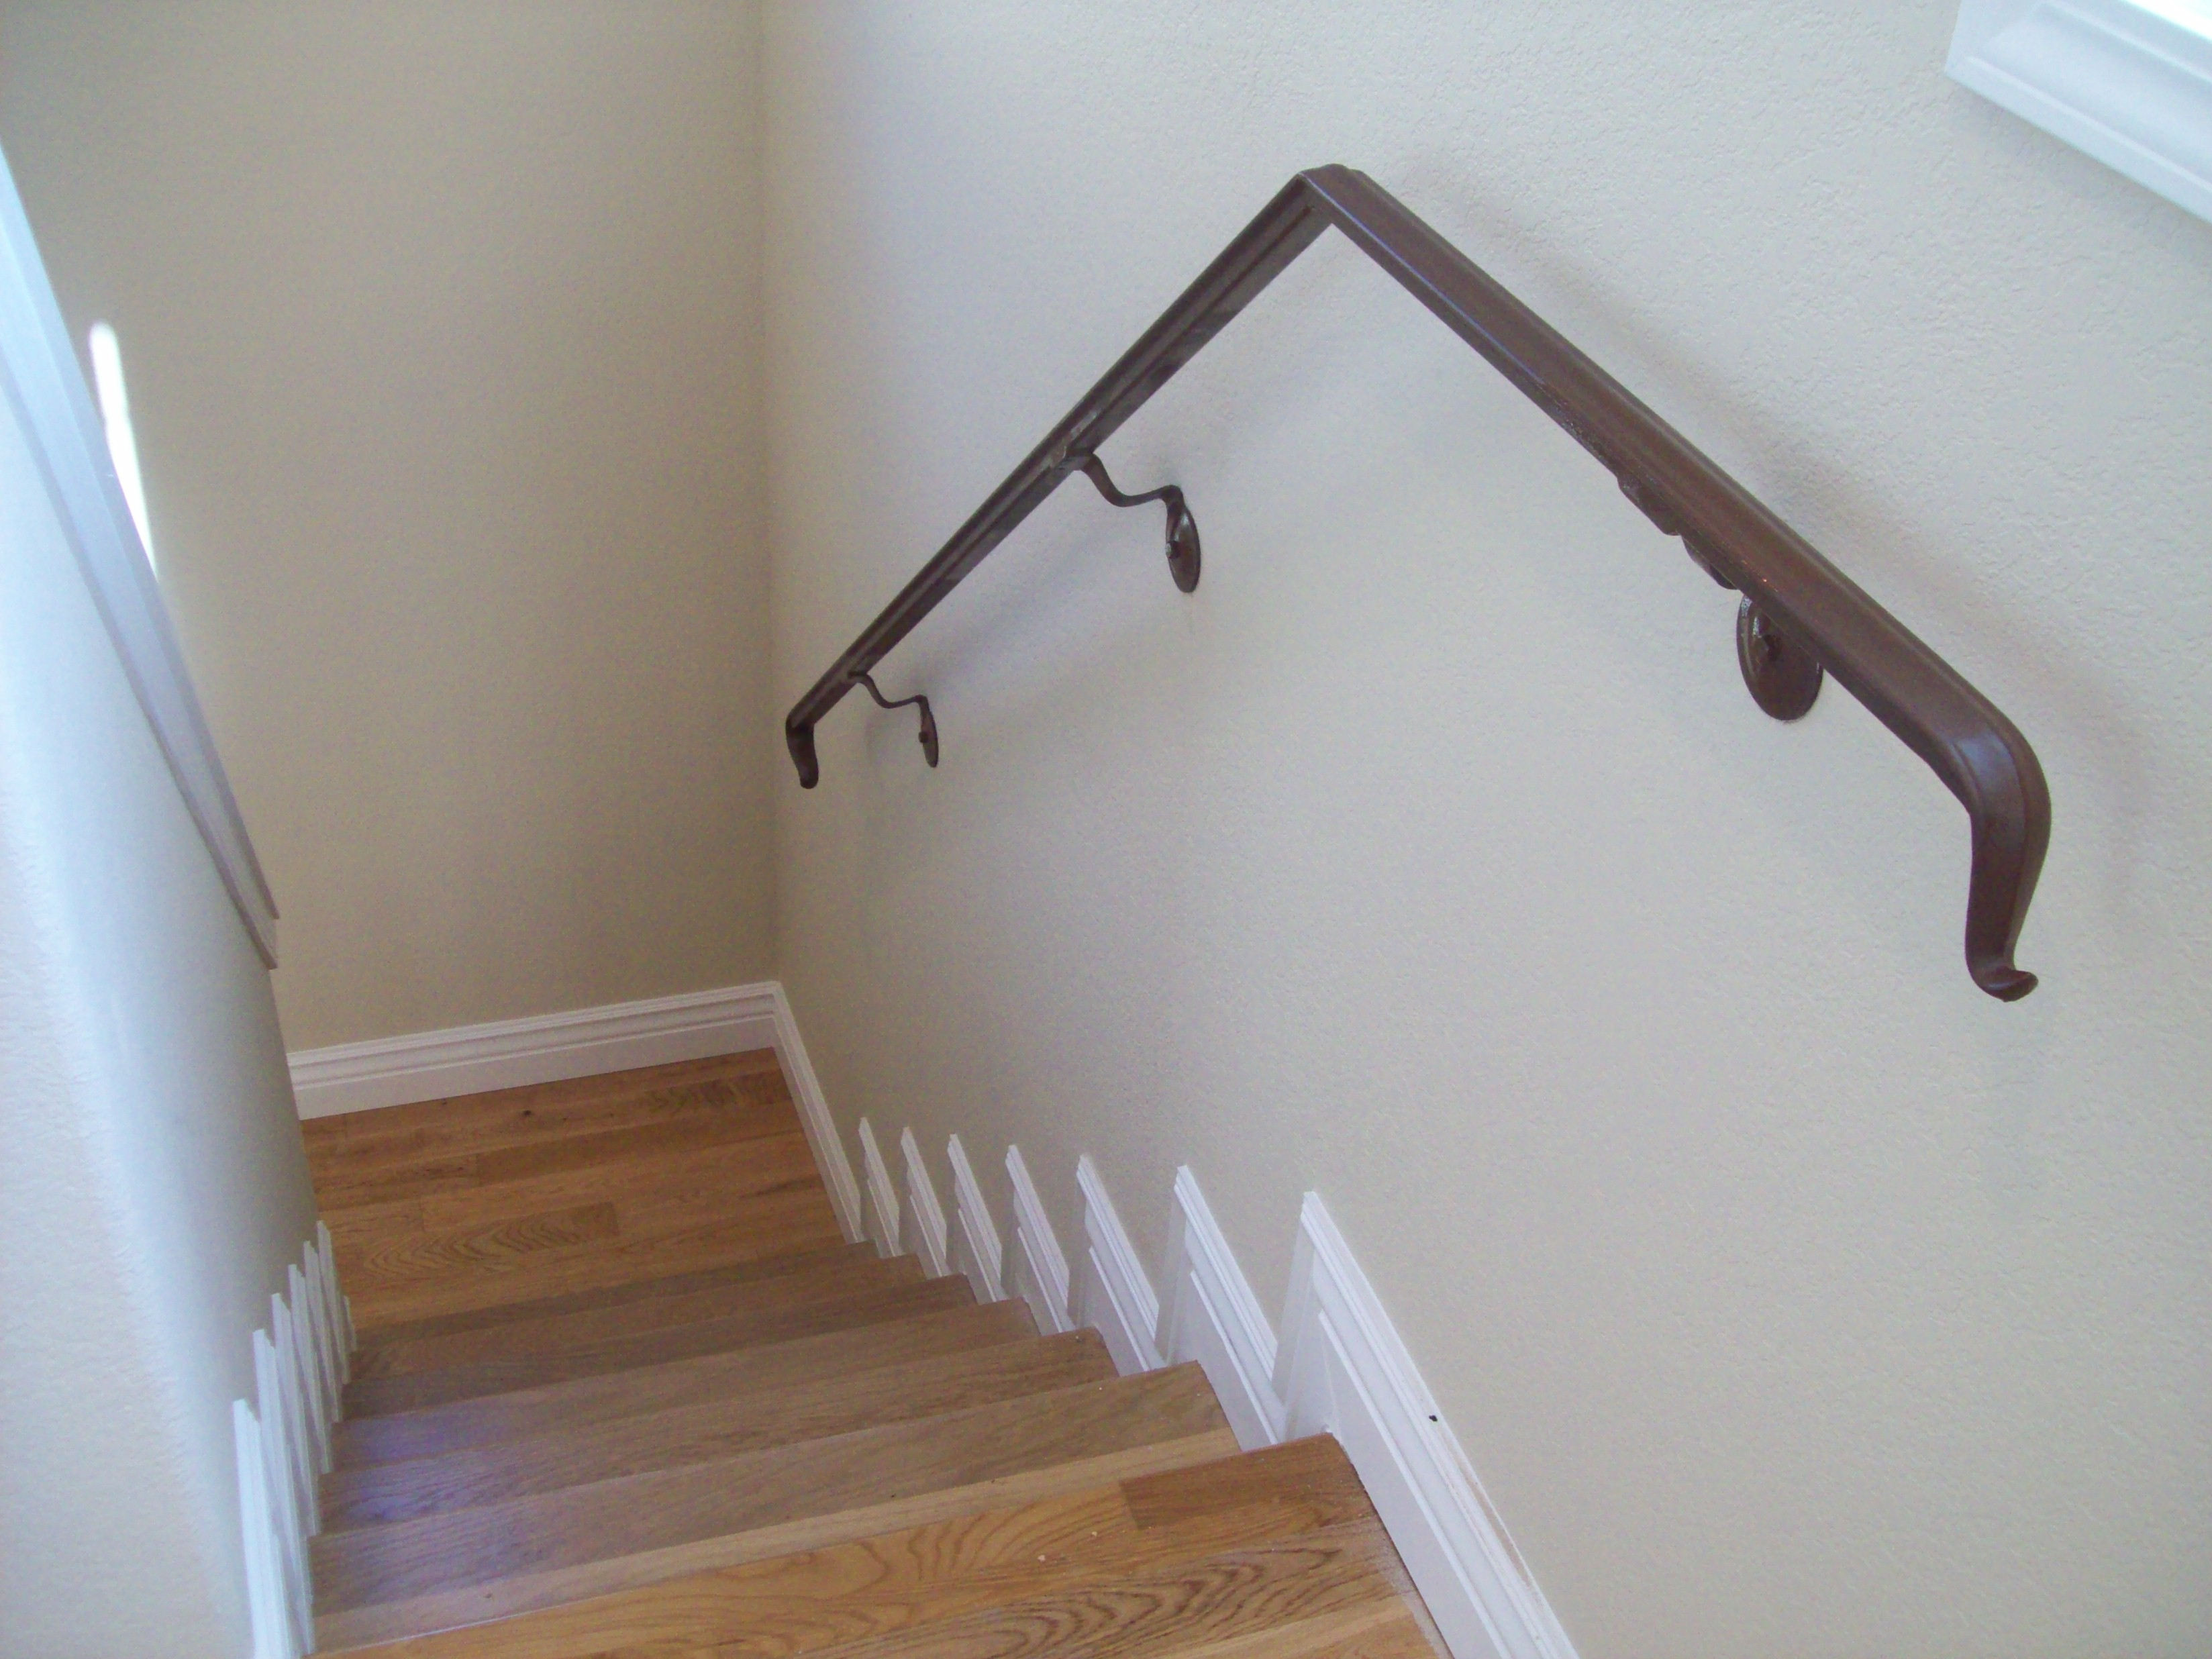 Wall Rails For Stairs Photos Freezer And Stair Iyashix